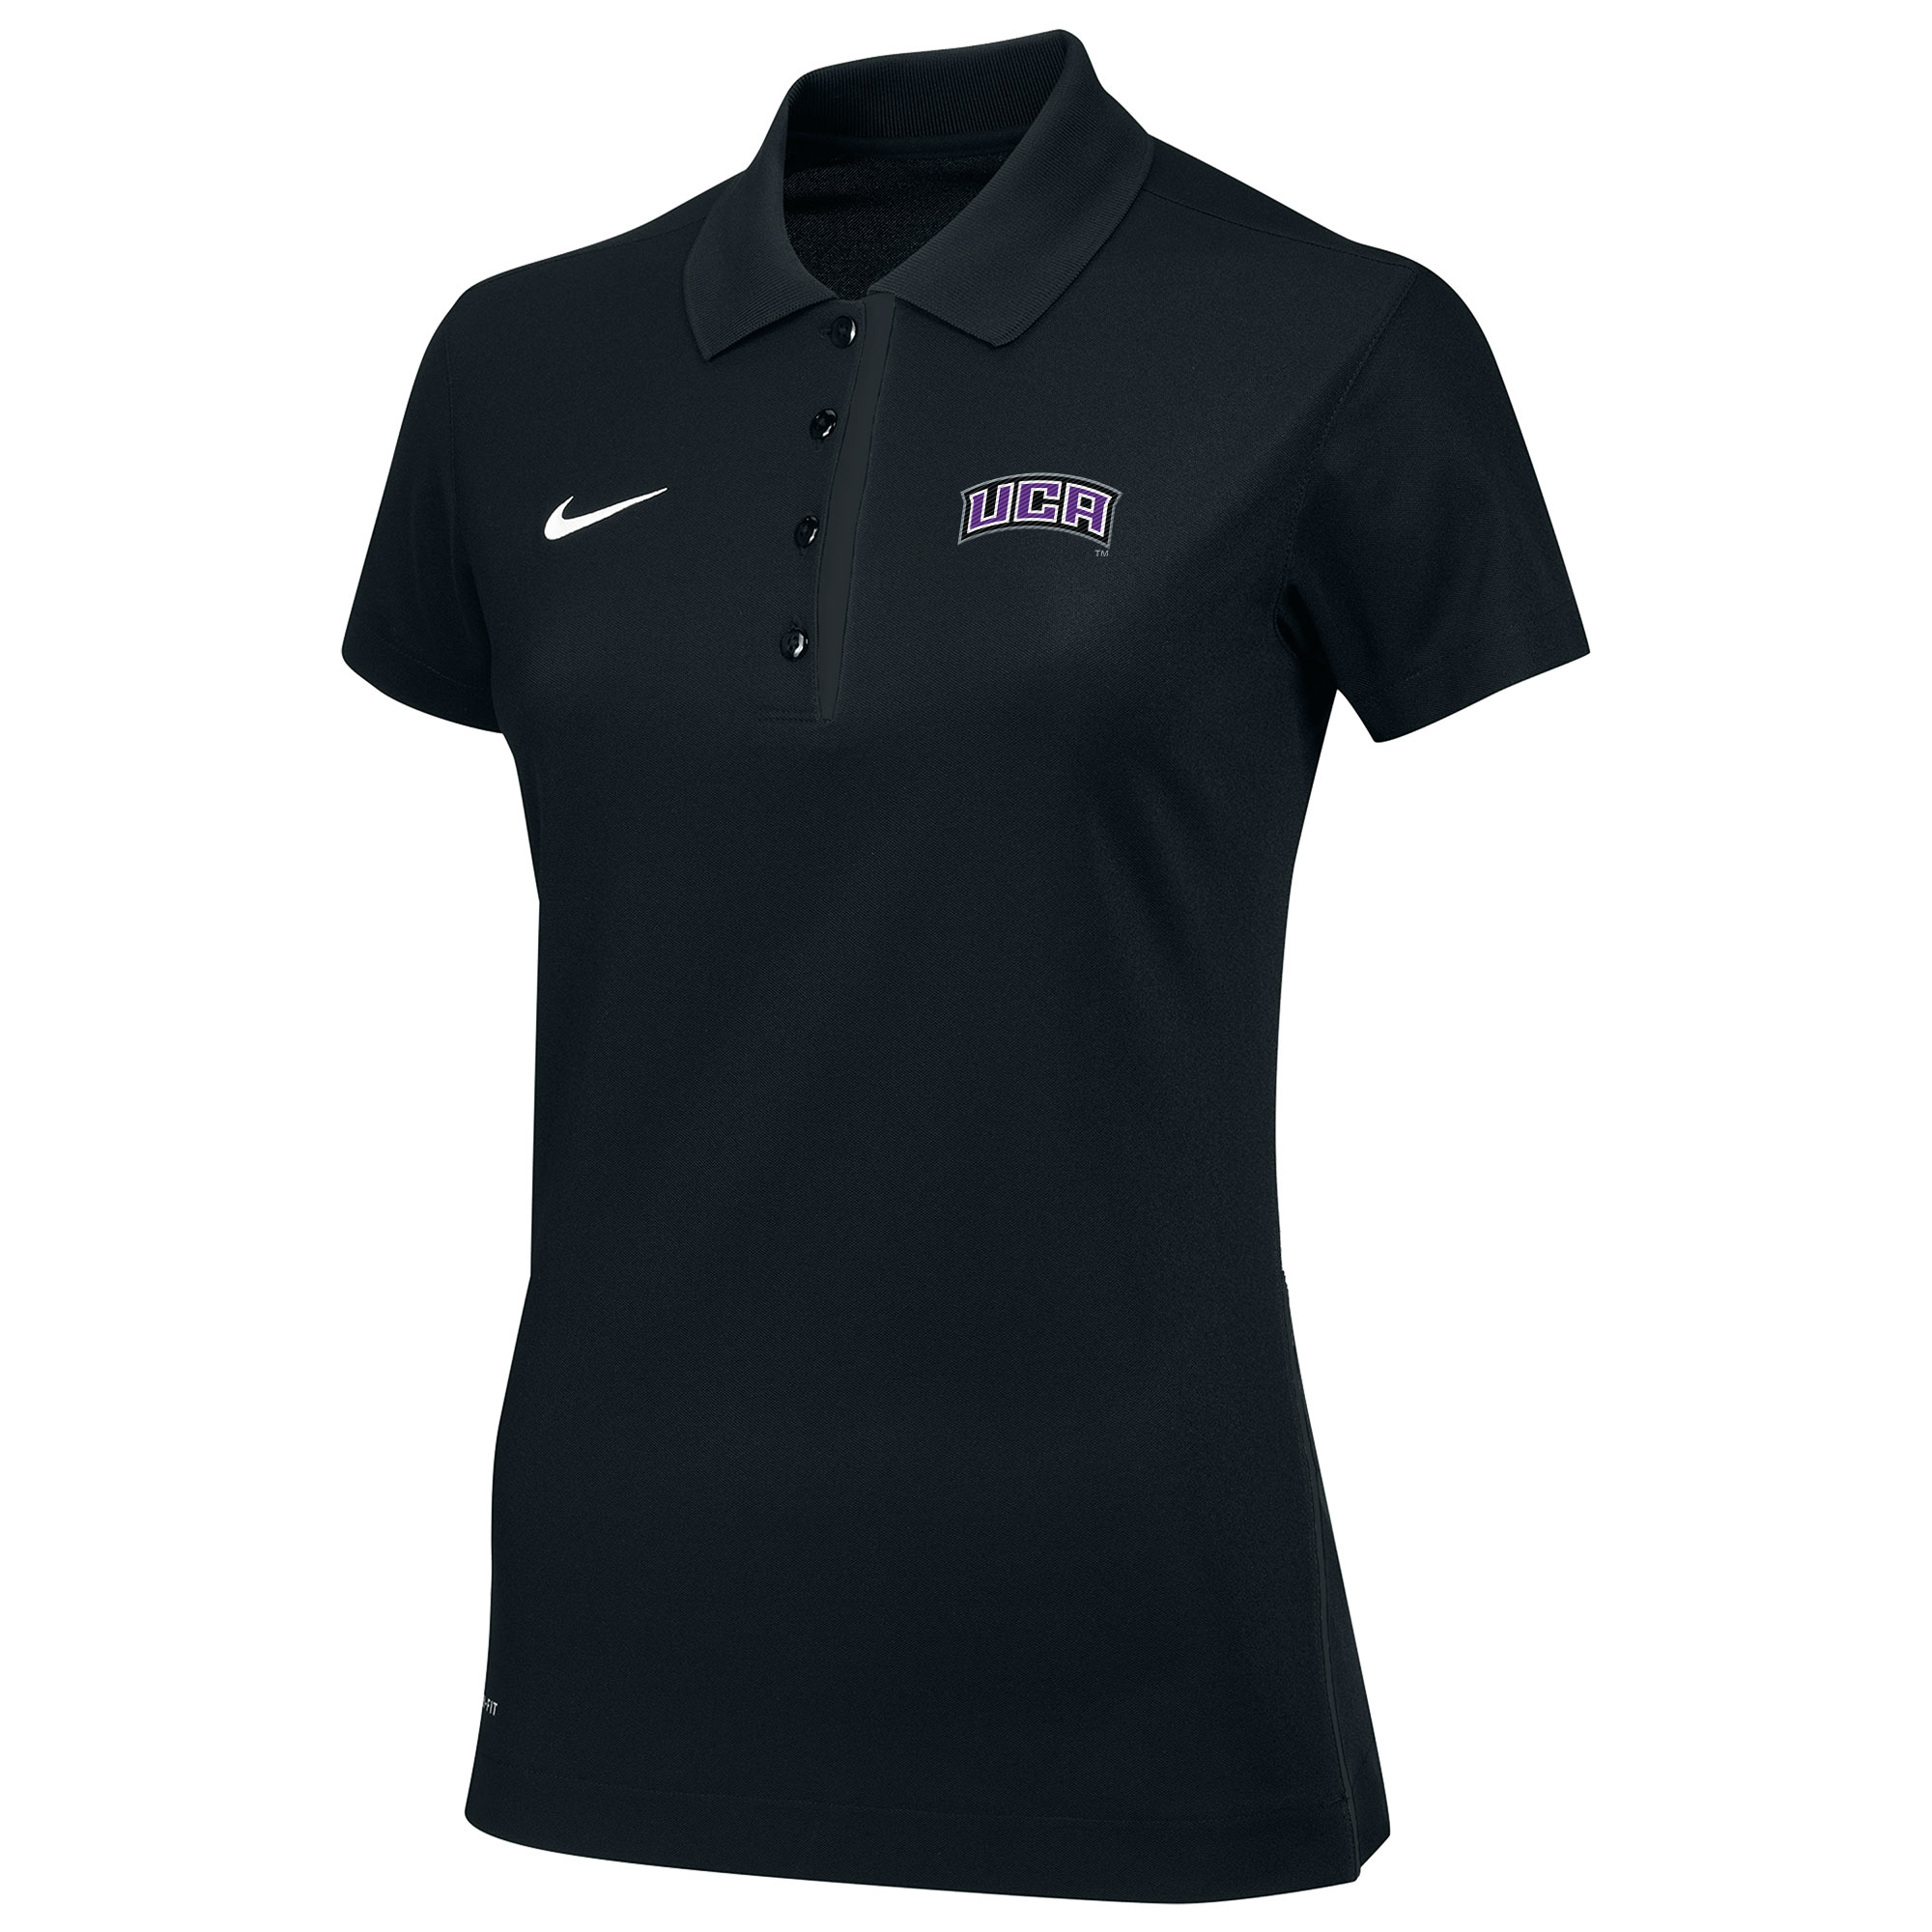 Womens Dedication Polo